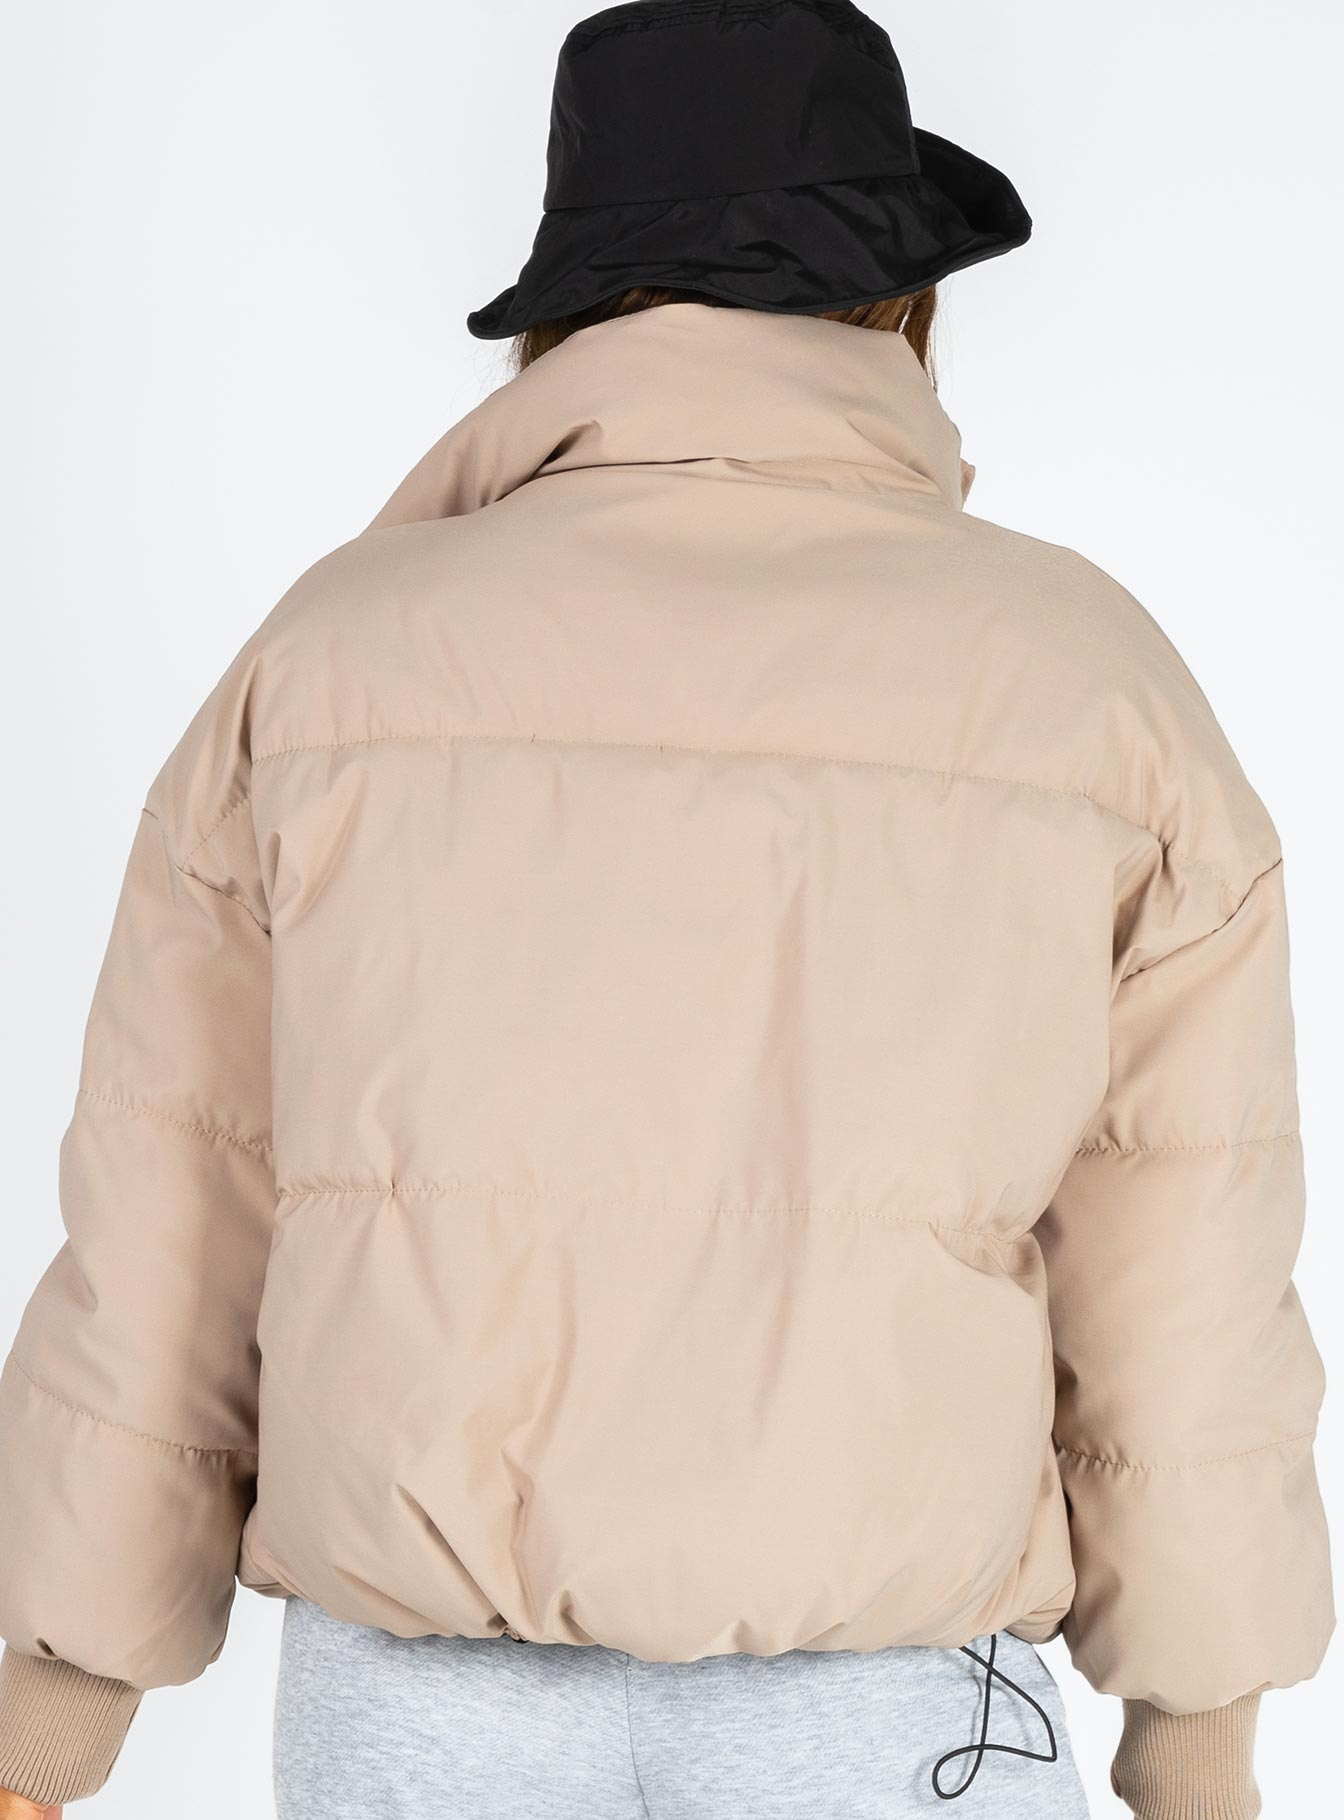 7th Avenue Puffer Jacket